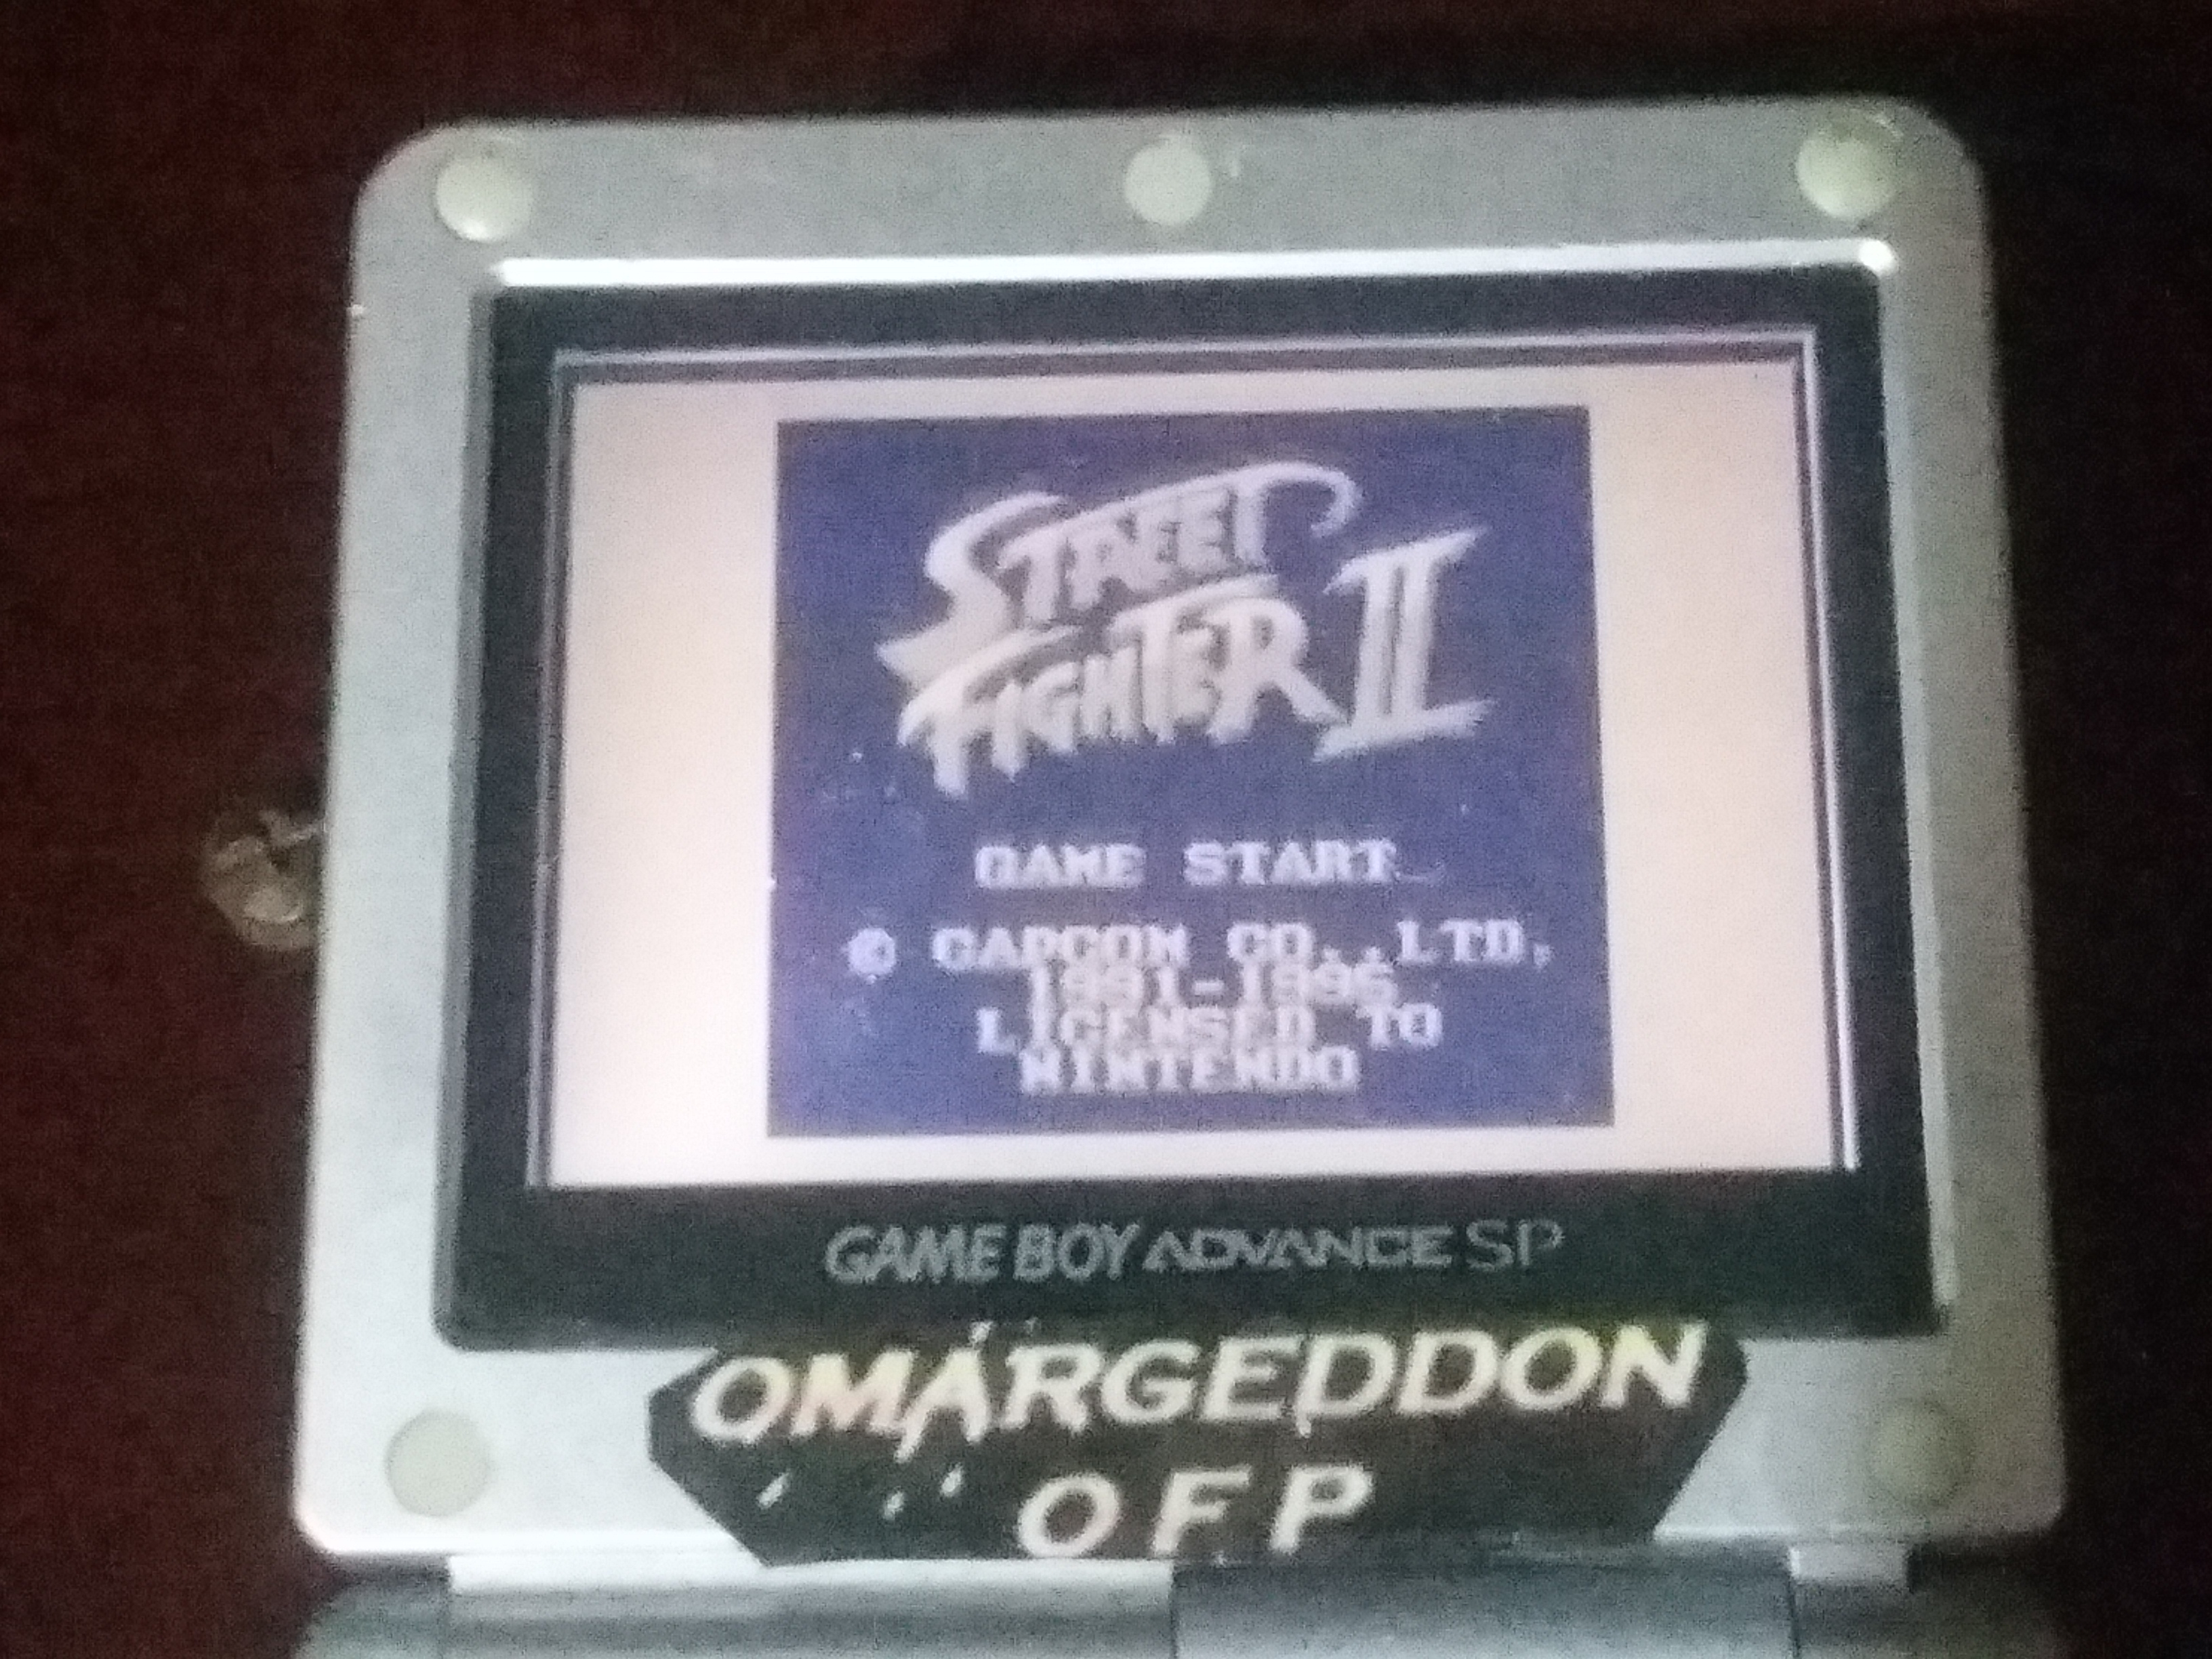 omargeddon: Street Fighter II [Game Level 1] (Game Boy) 720,300 points on 2018-01-03 22:04:54